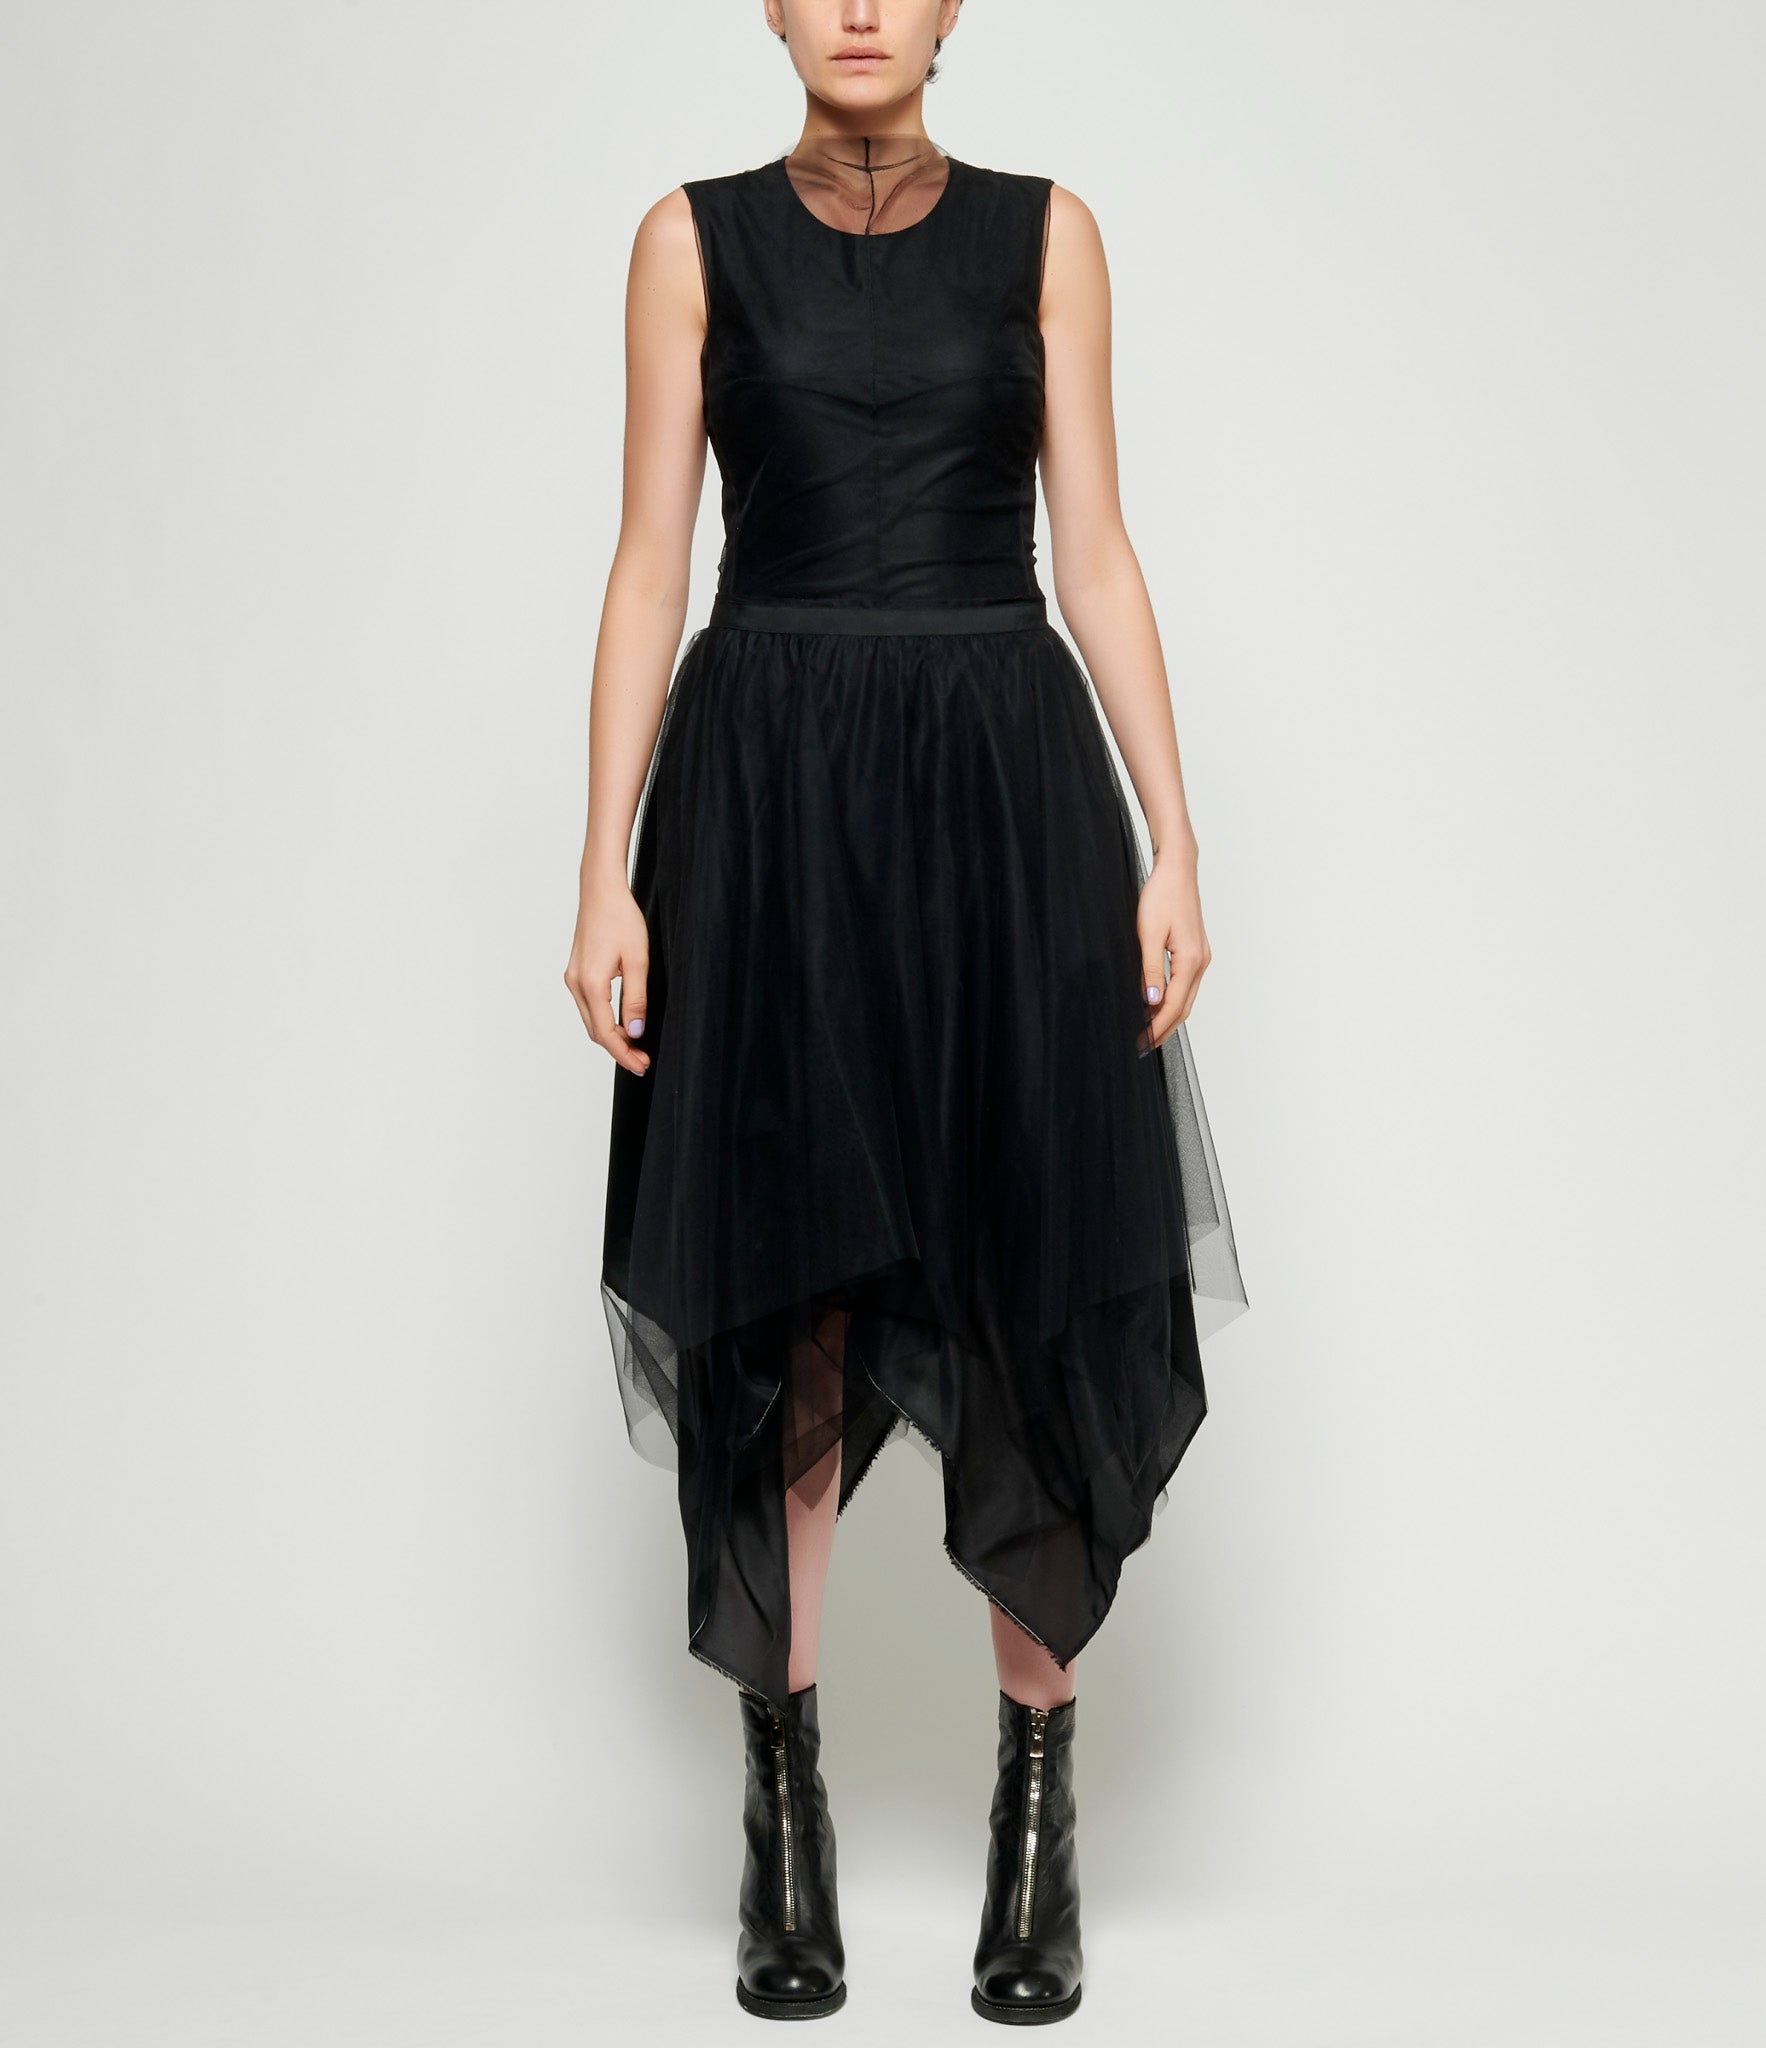 Marc Le Bihan Classic Alternating 3 Layered Tulle Skirt